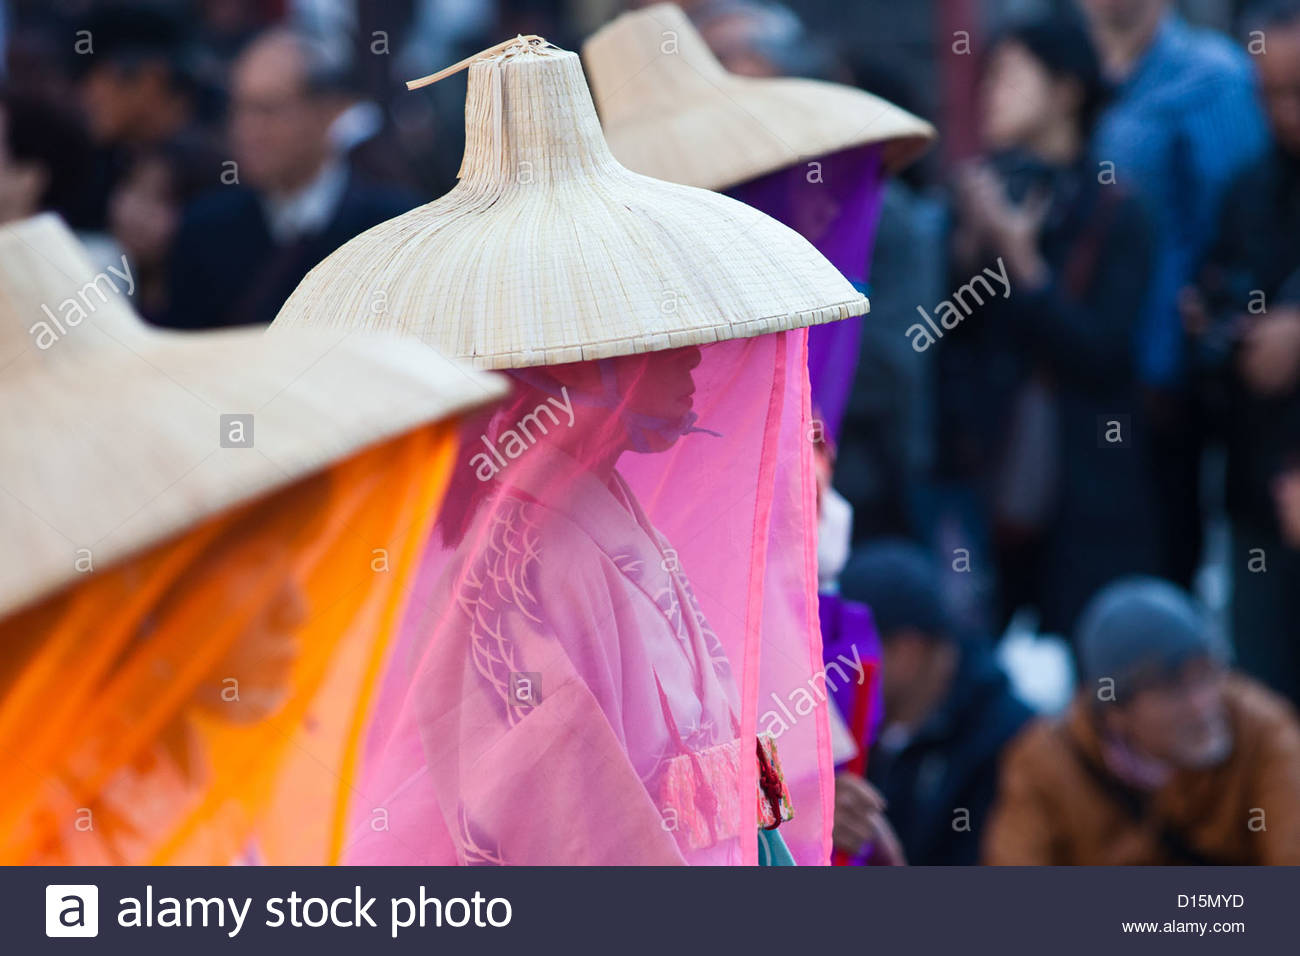 Women with colourful veils walk in the Jidai matsuri parade through Asakusa, Tokyo. Stock Photo